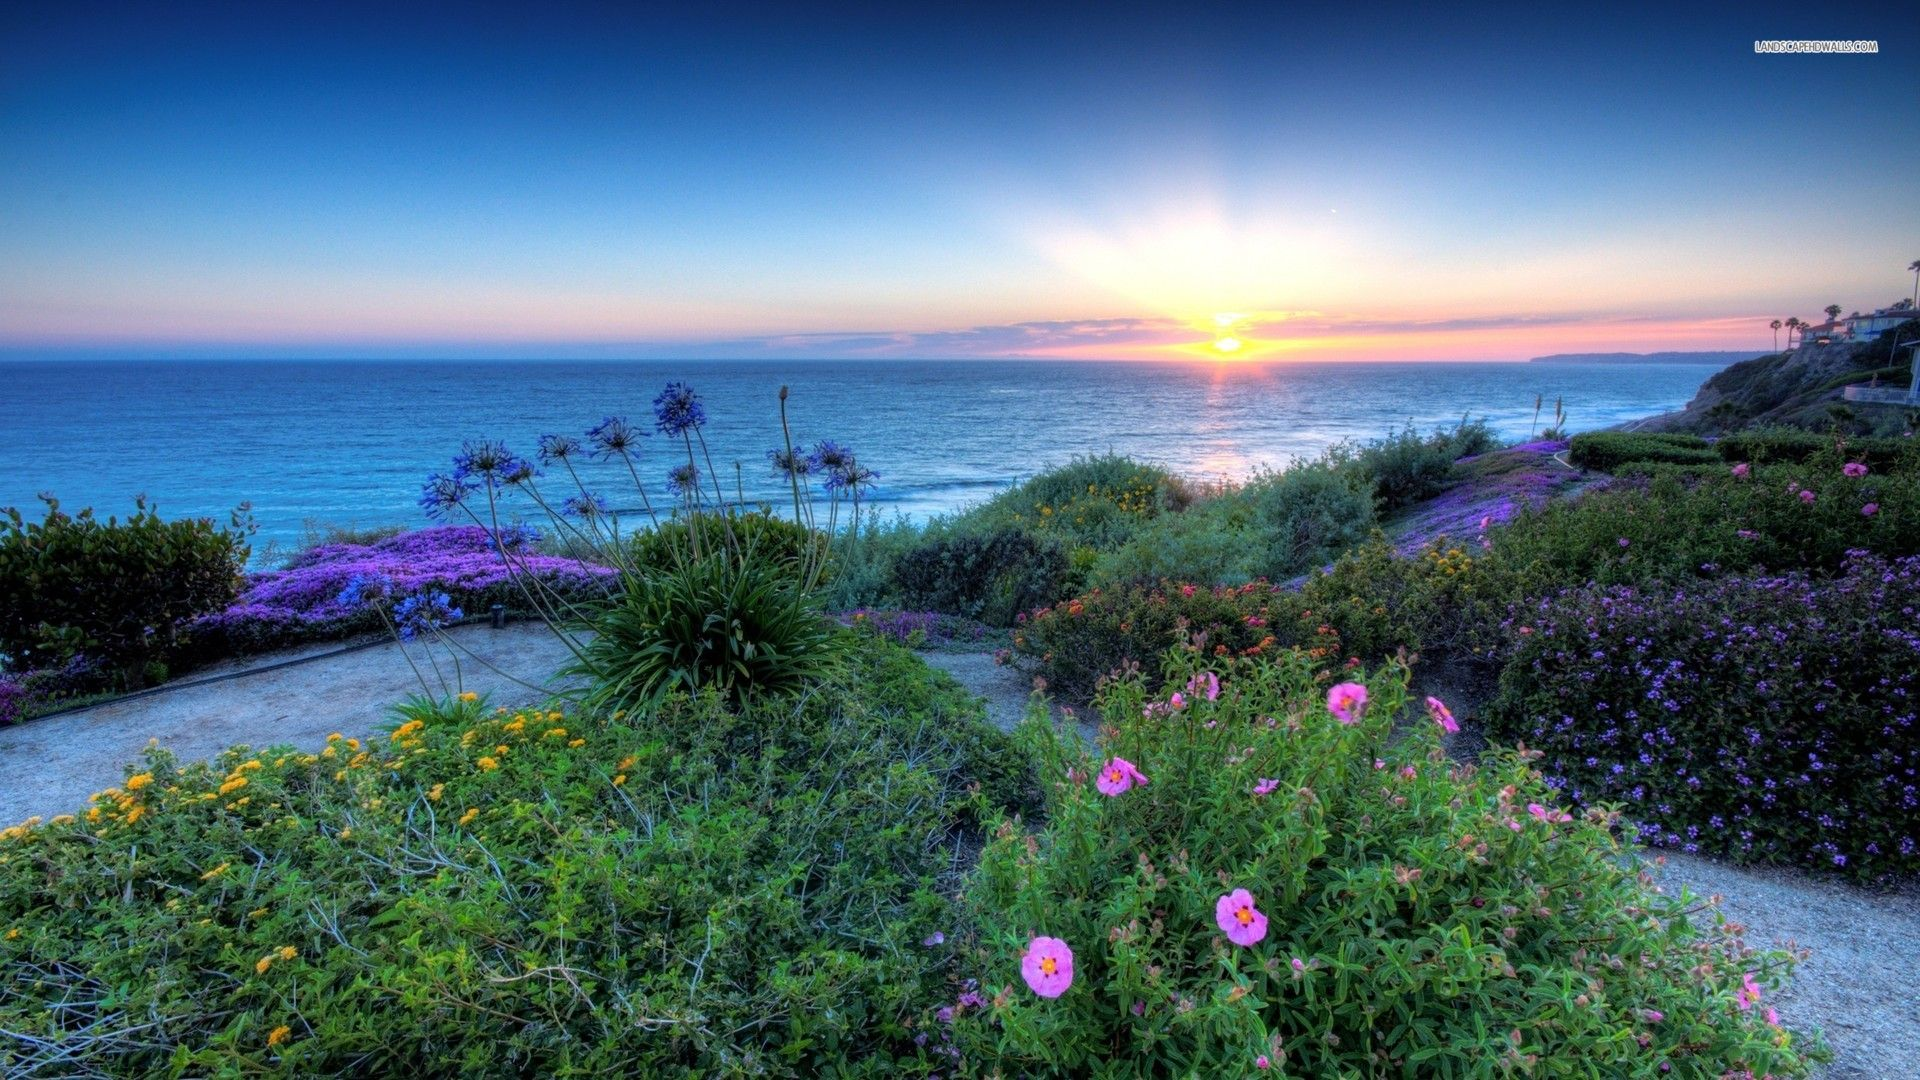 Beach Flower | Flowers on the Beach at Sunrise wallpaper | oceanview ...